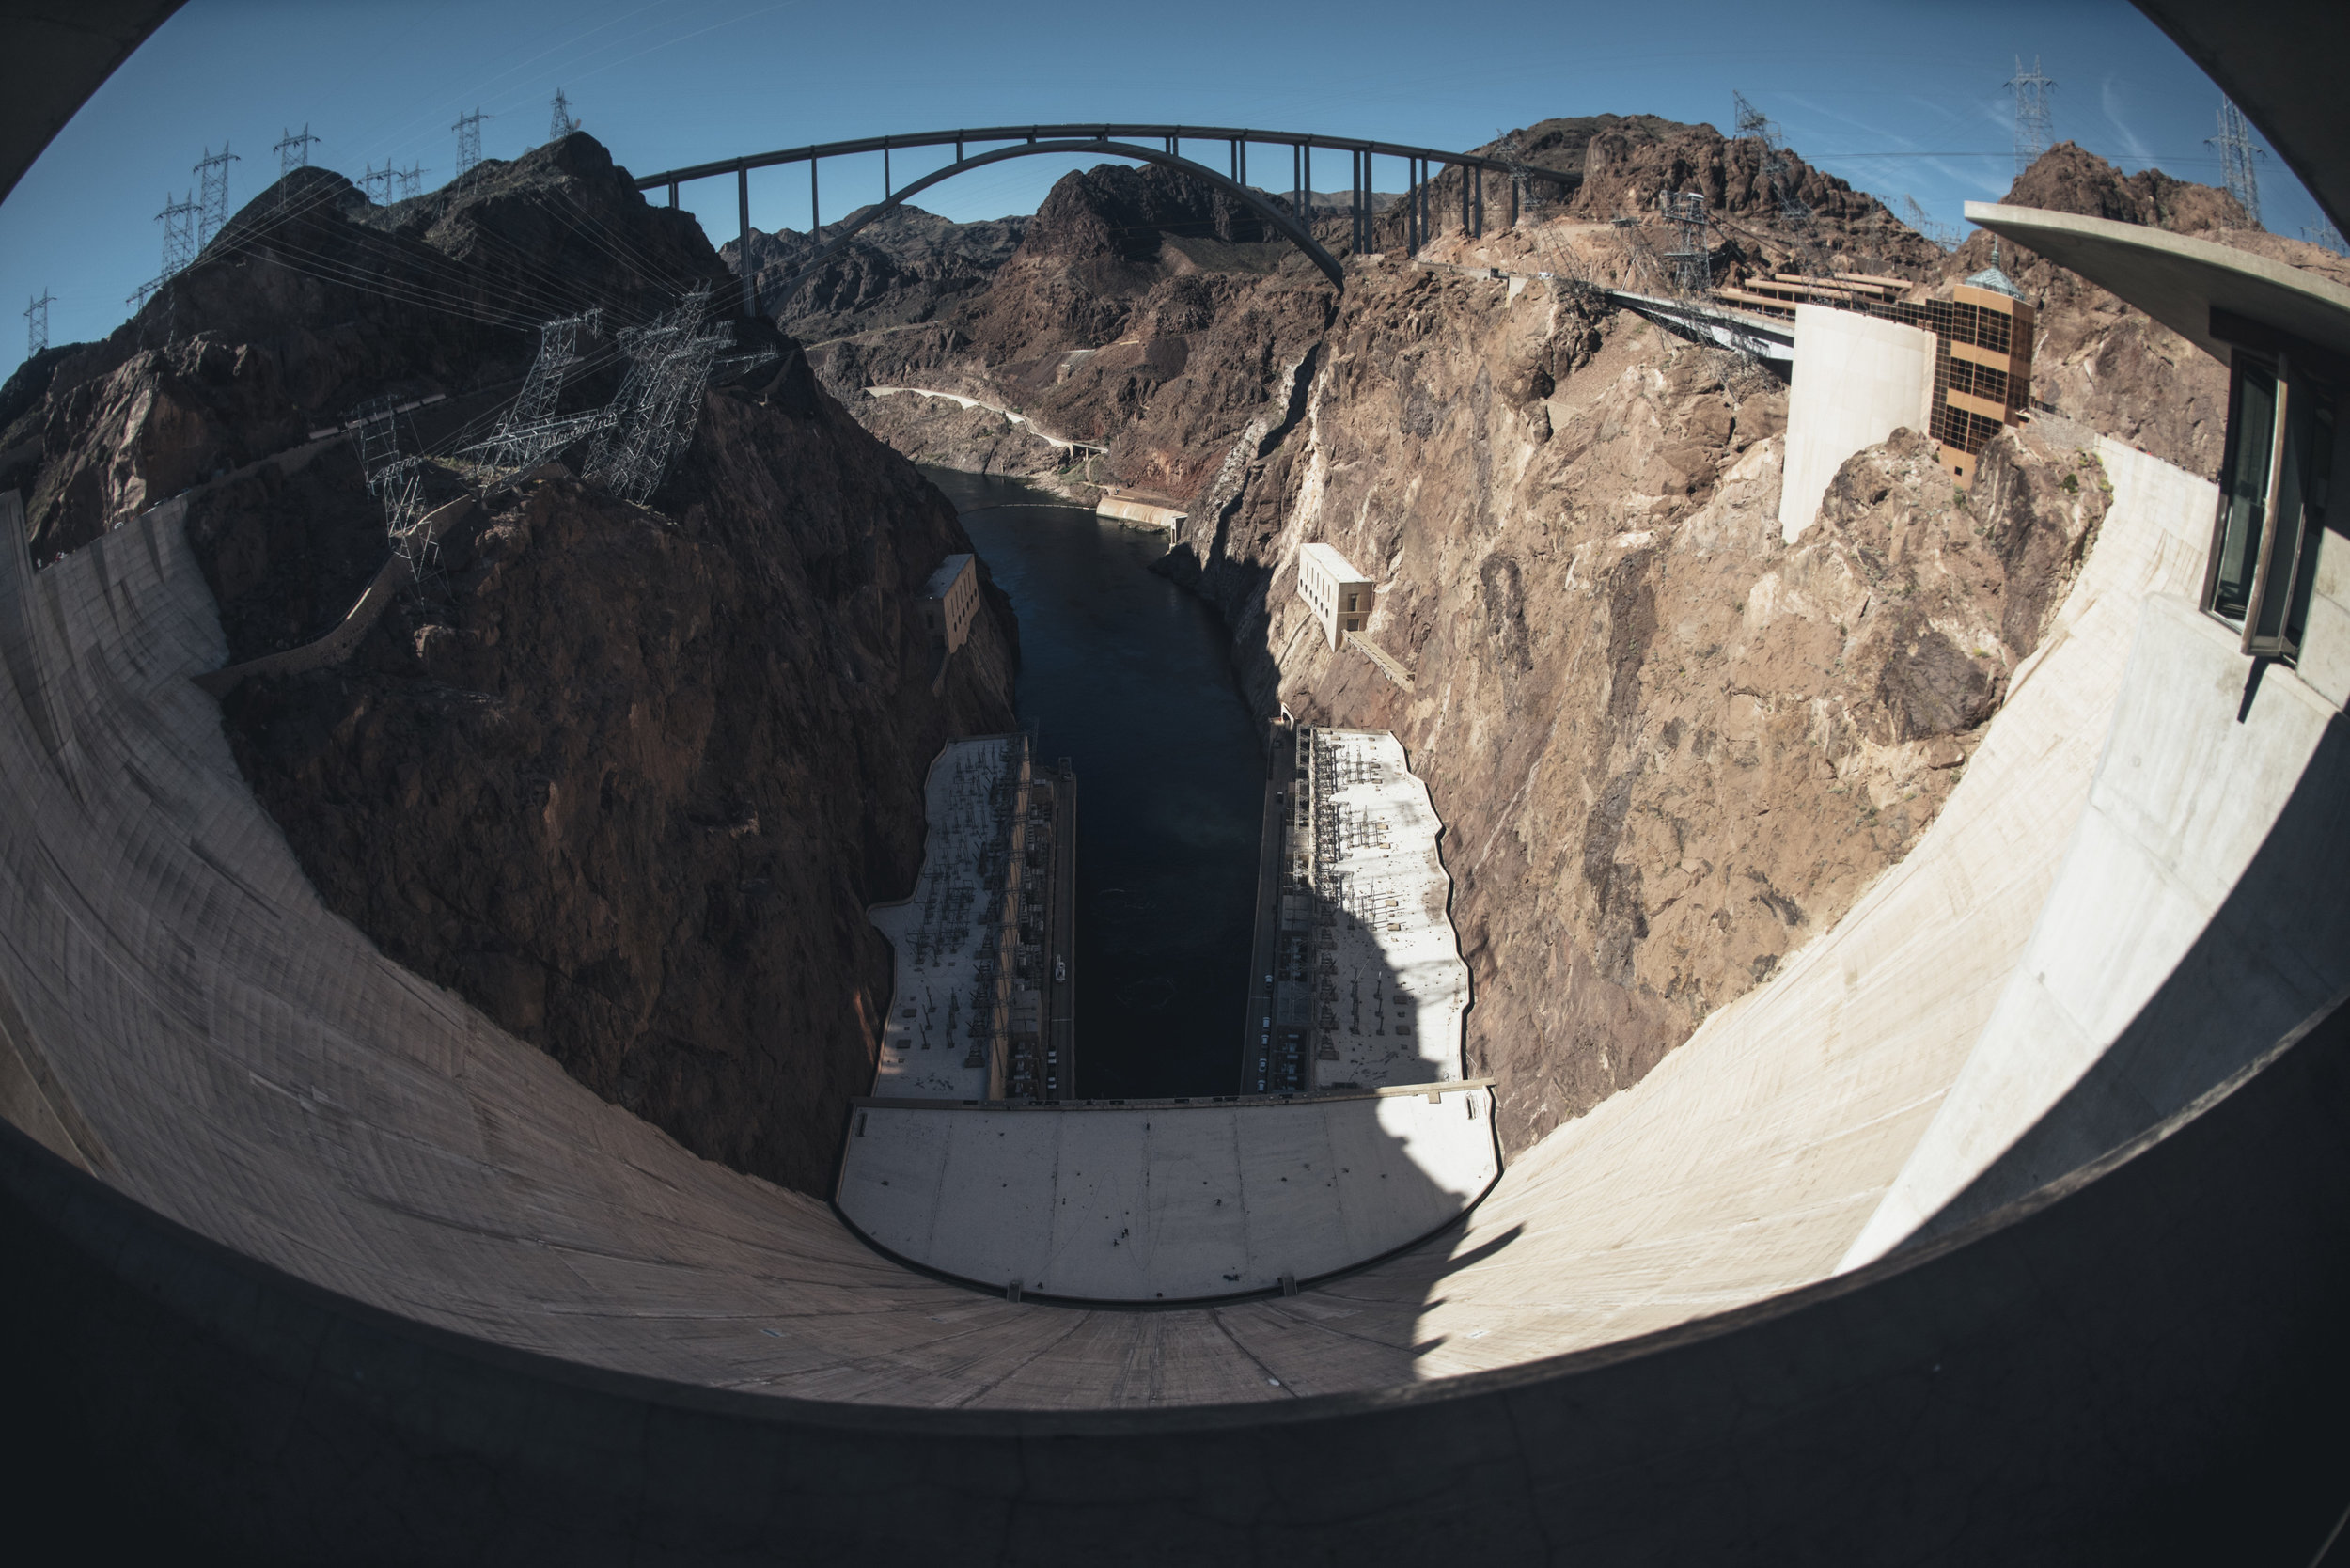 Southern Nevada gets almost 90 percent of its water supply from the Colorado River, which pools behind the Hoover Dam to create the largest reservoir in the US, Lake Mead